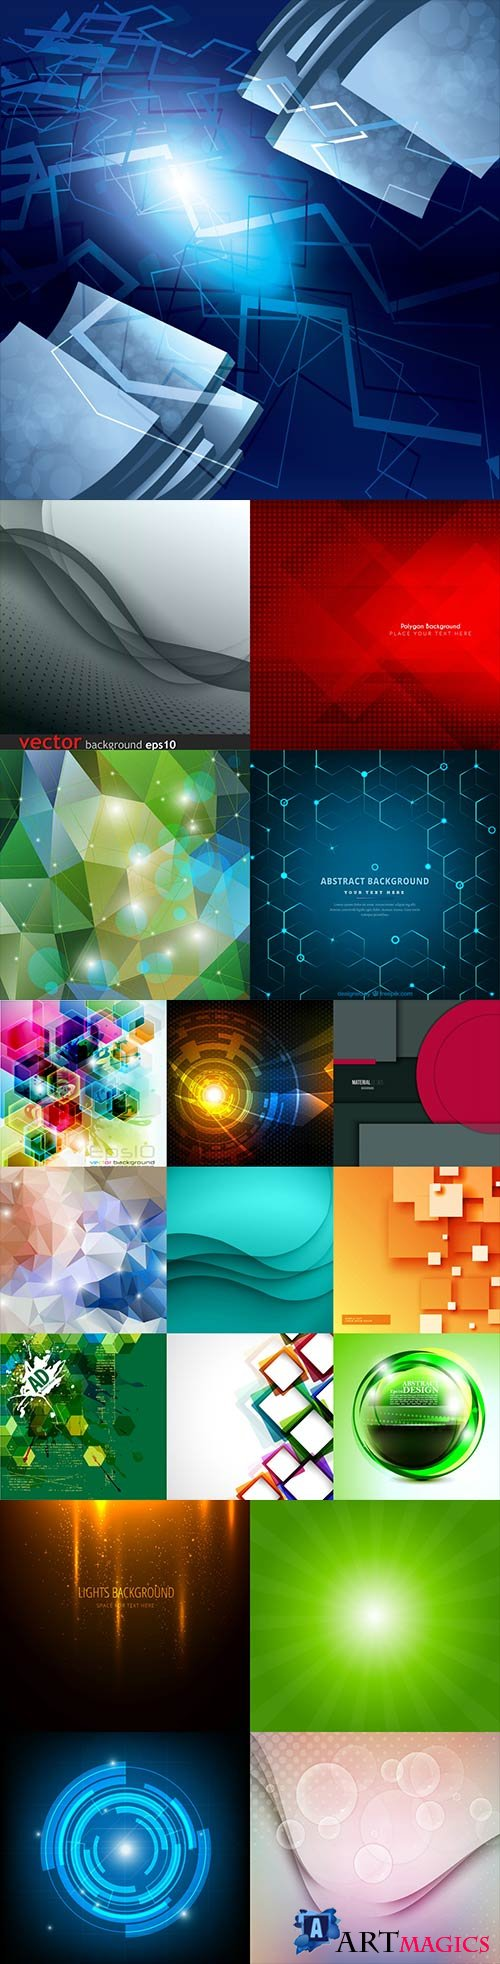 Bright colorful abstract backgrounds vector - 81